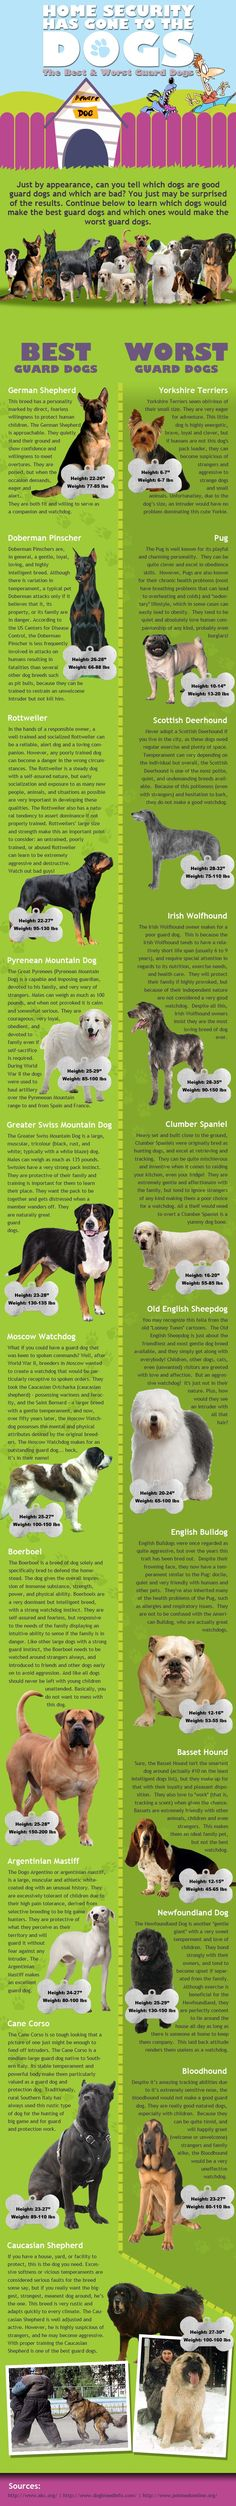 Best and Worst Guard Dogs - Infographic